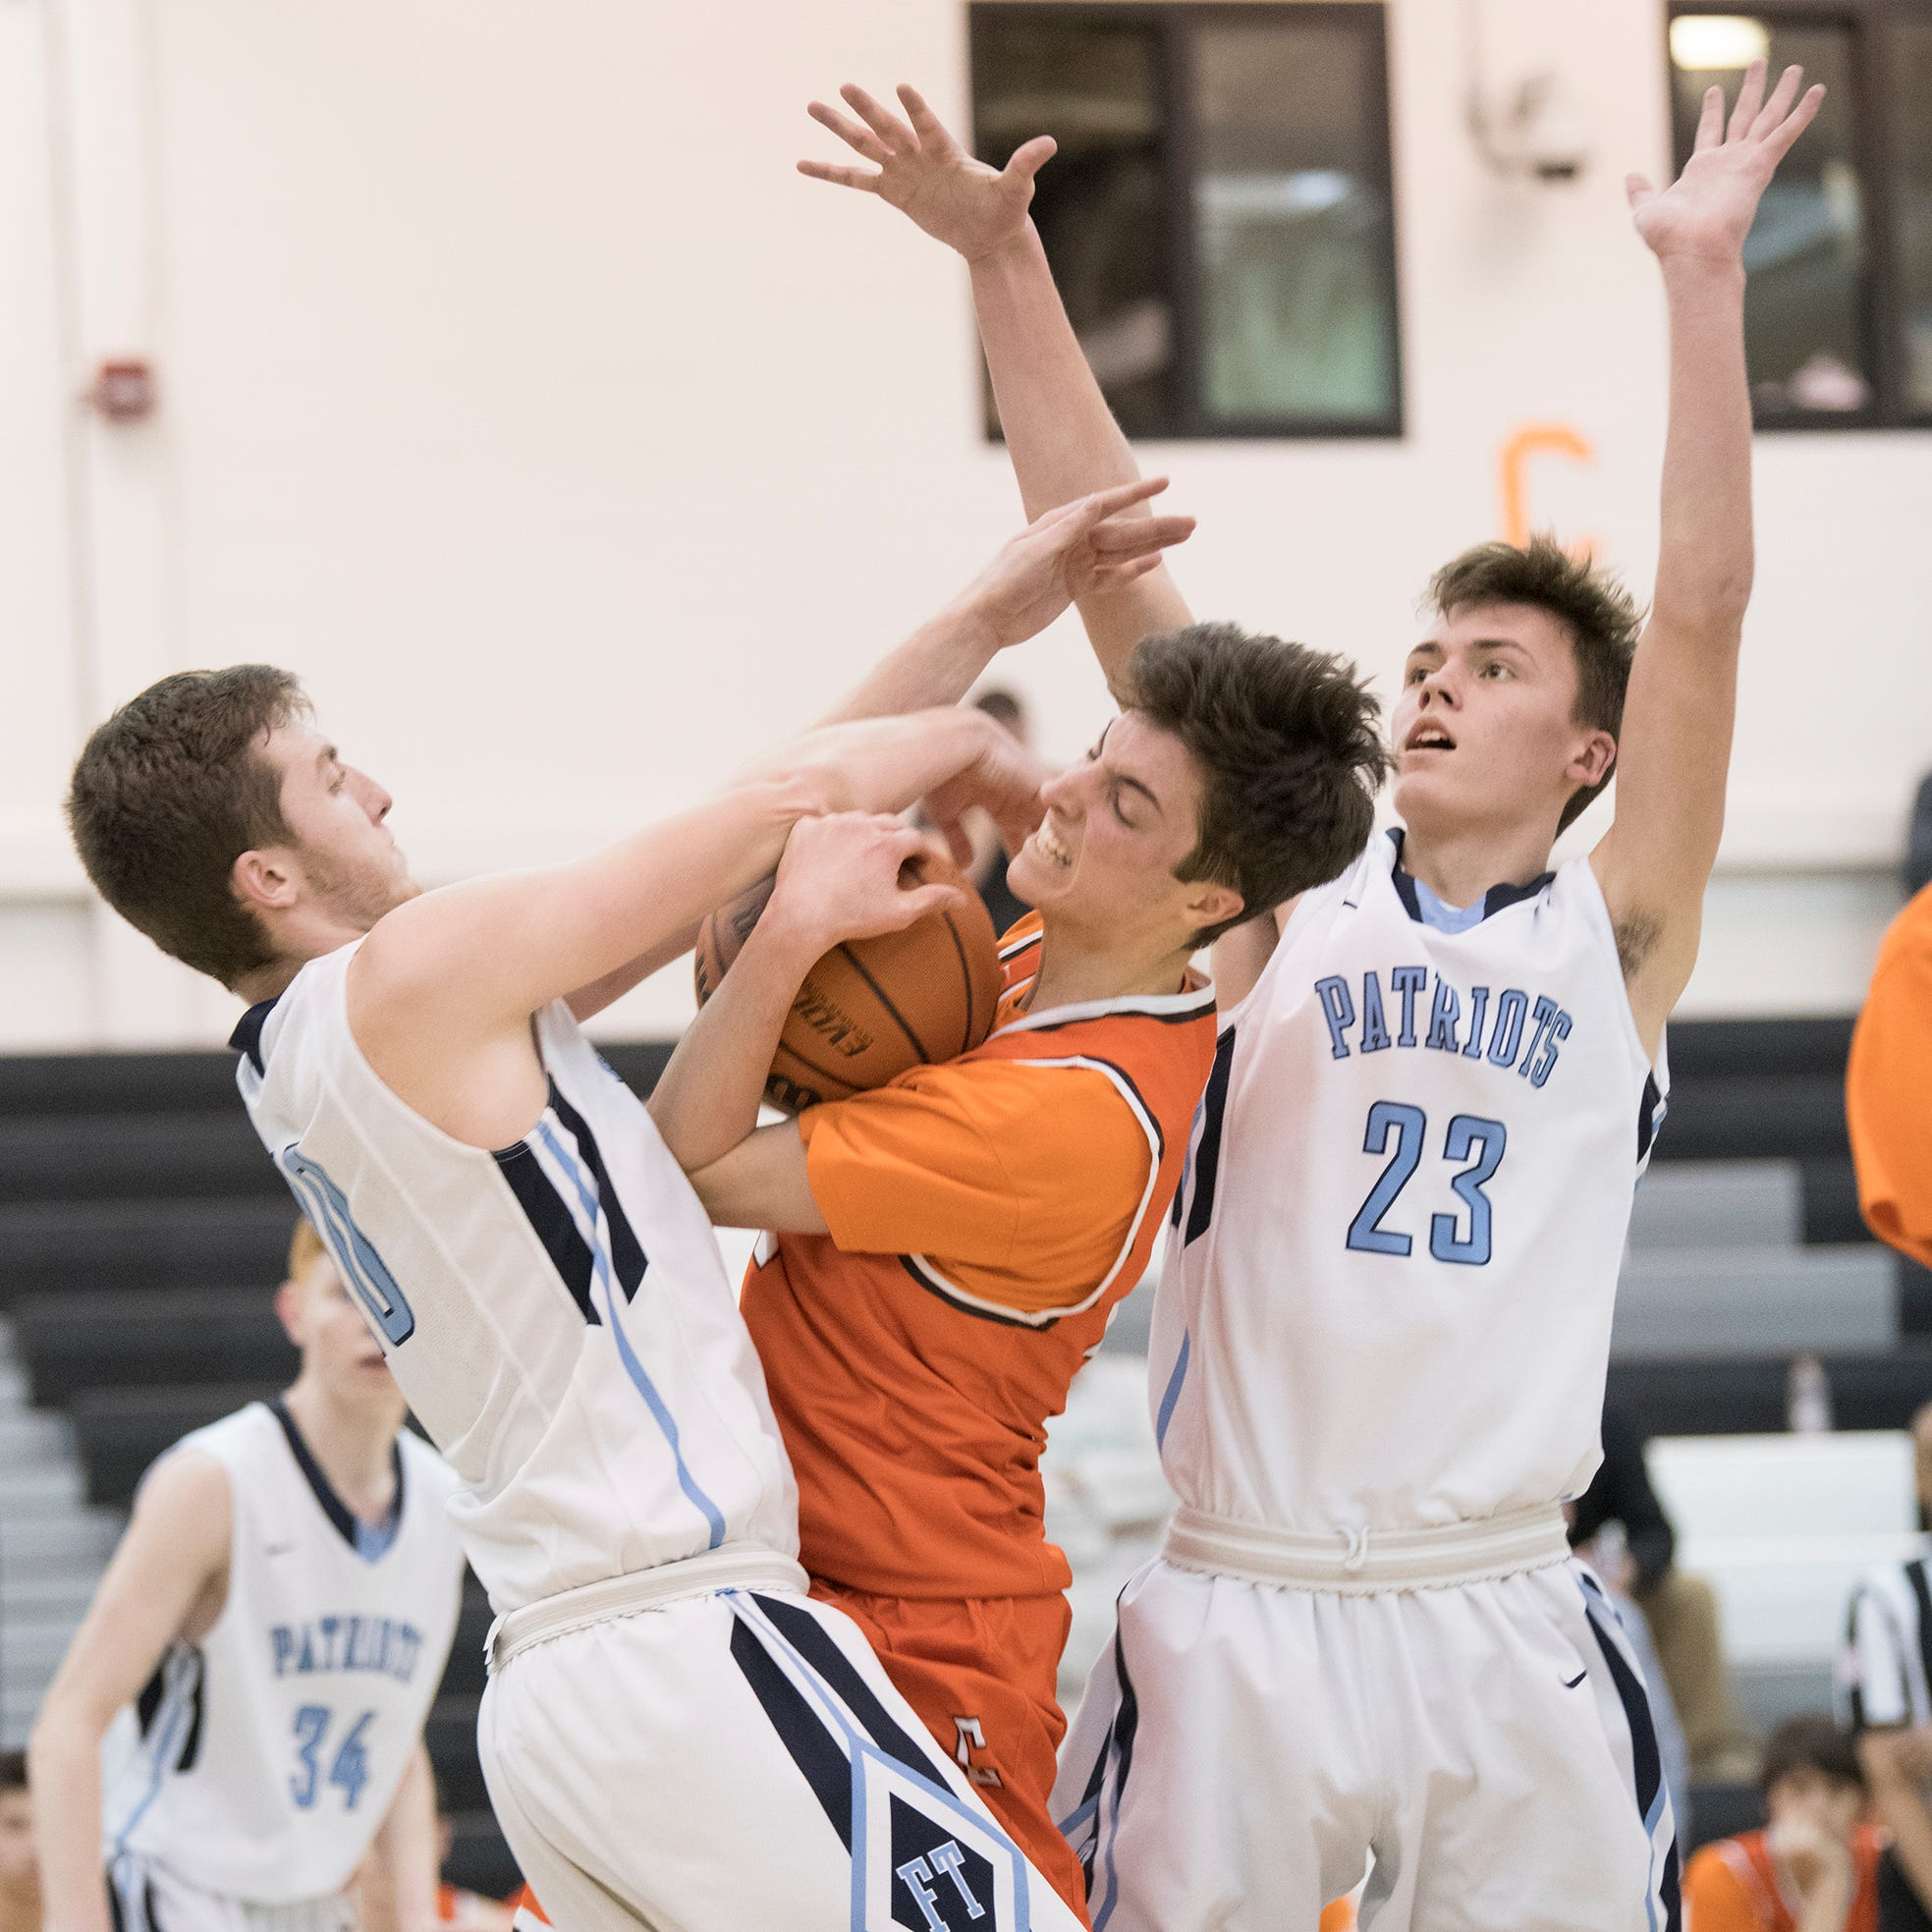 South Jersey basketball: Cherokee comes up just short in state semifinals